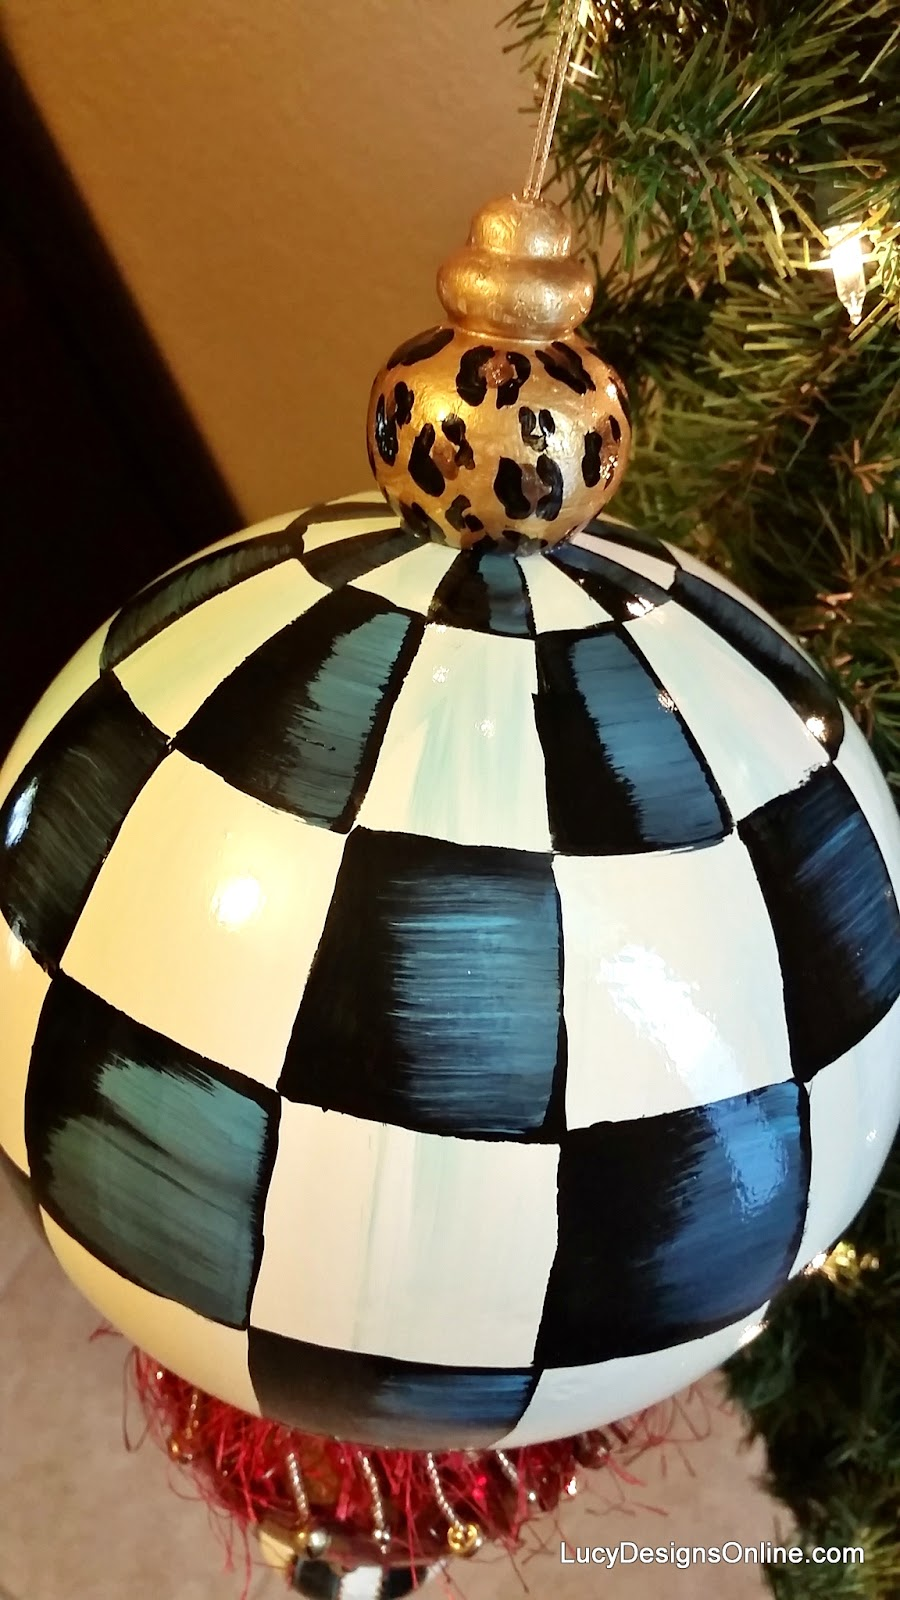 giant black and white check Christmas ornament